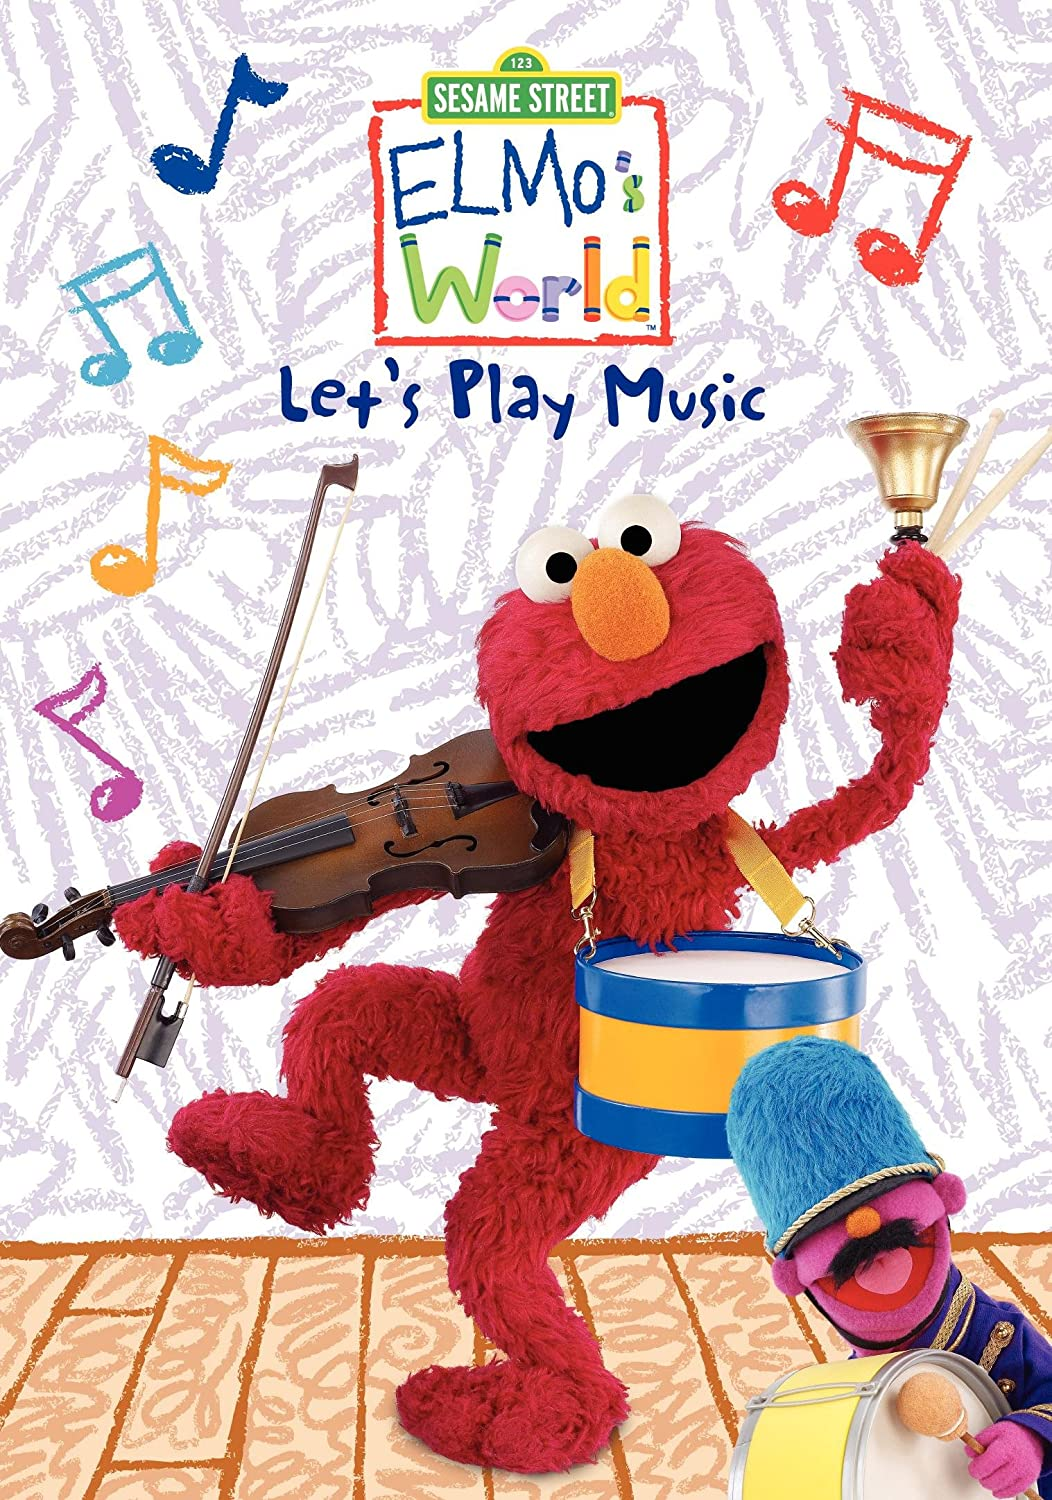 Elmo's World: Let's Play Music Kevin Clash Fran Brill Tyler Bunch Leslie Carrara-Rudolph